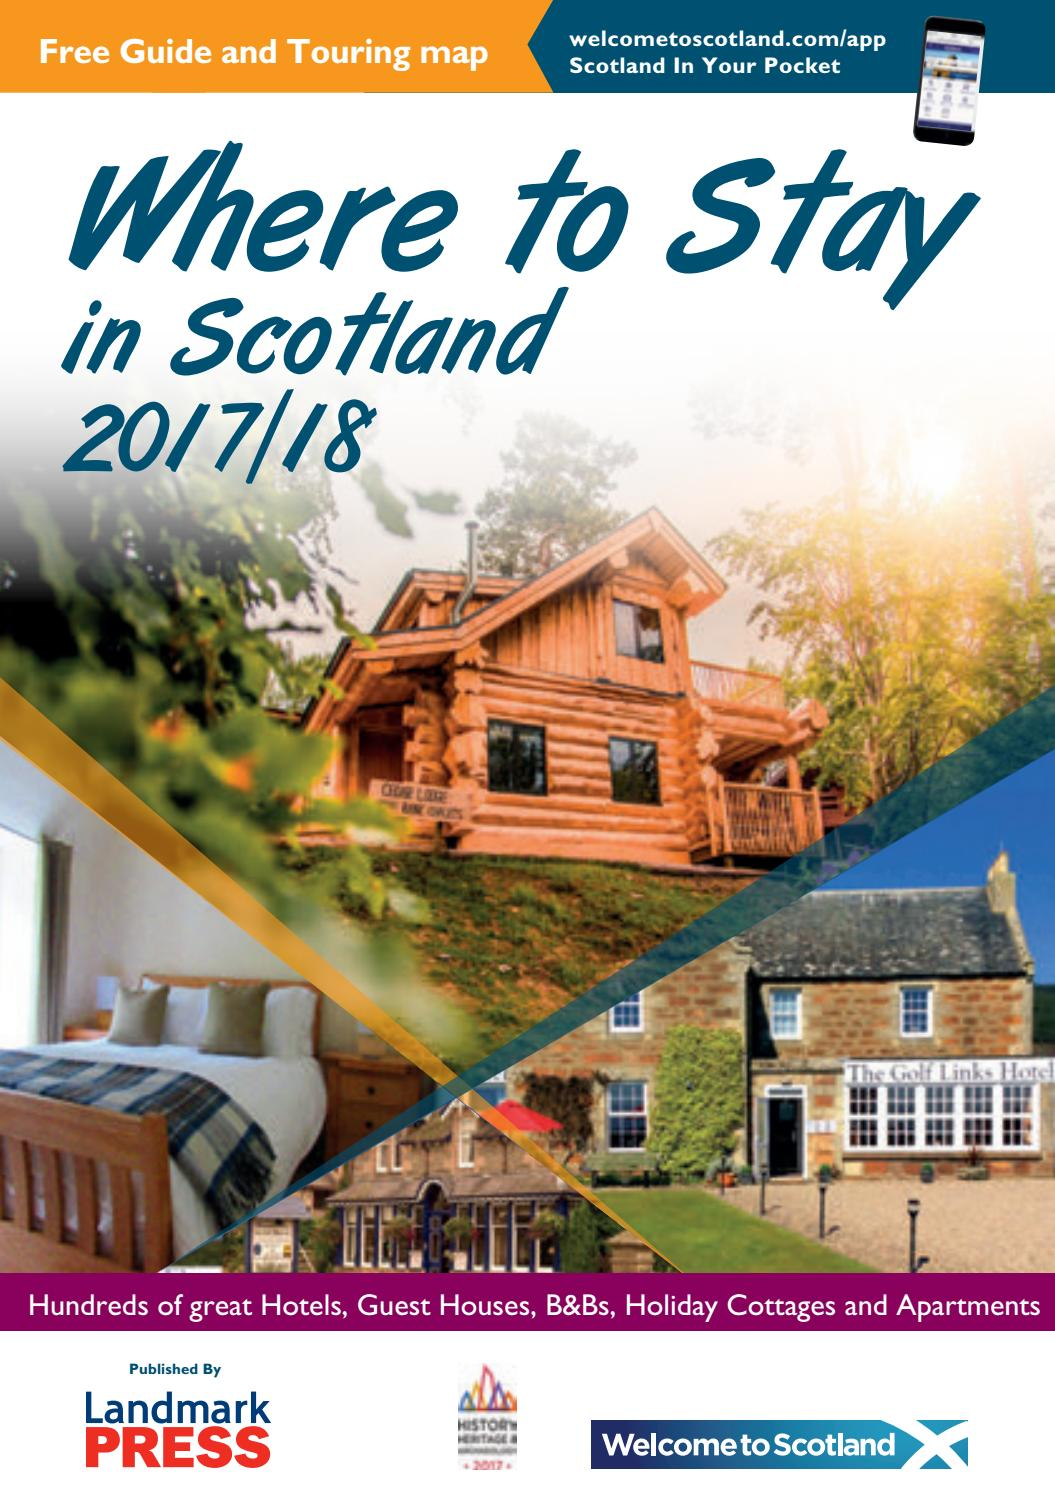 Where to Stay in Scotland Guide 2017-18 by Landmark Press